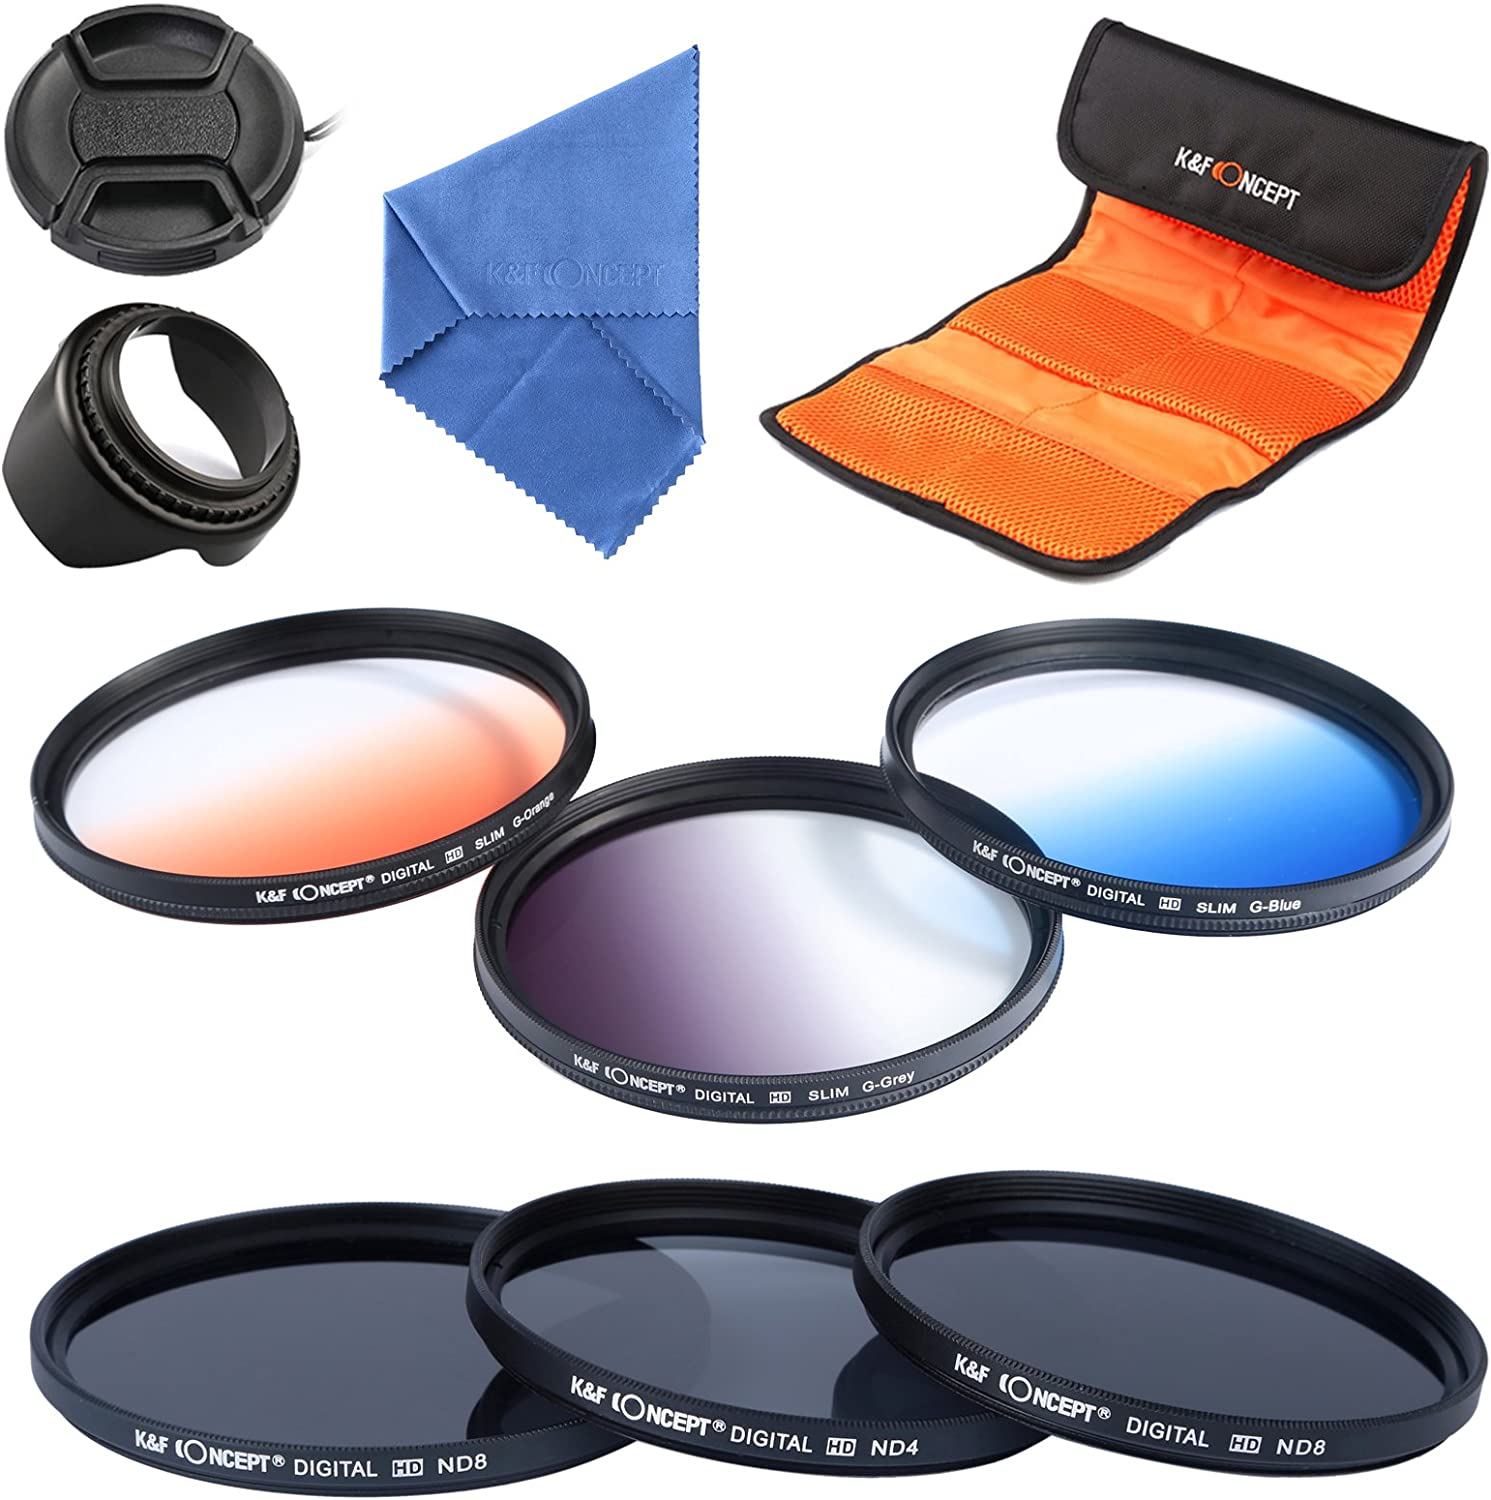 Recommended 67mm filter set KF Concept Neutr Filters Professional Lens Today's only